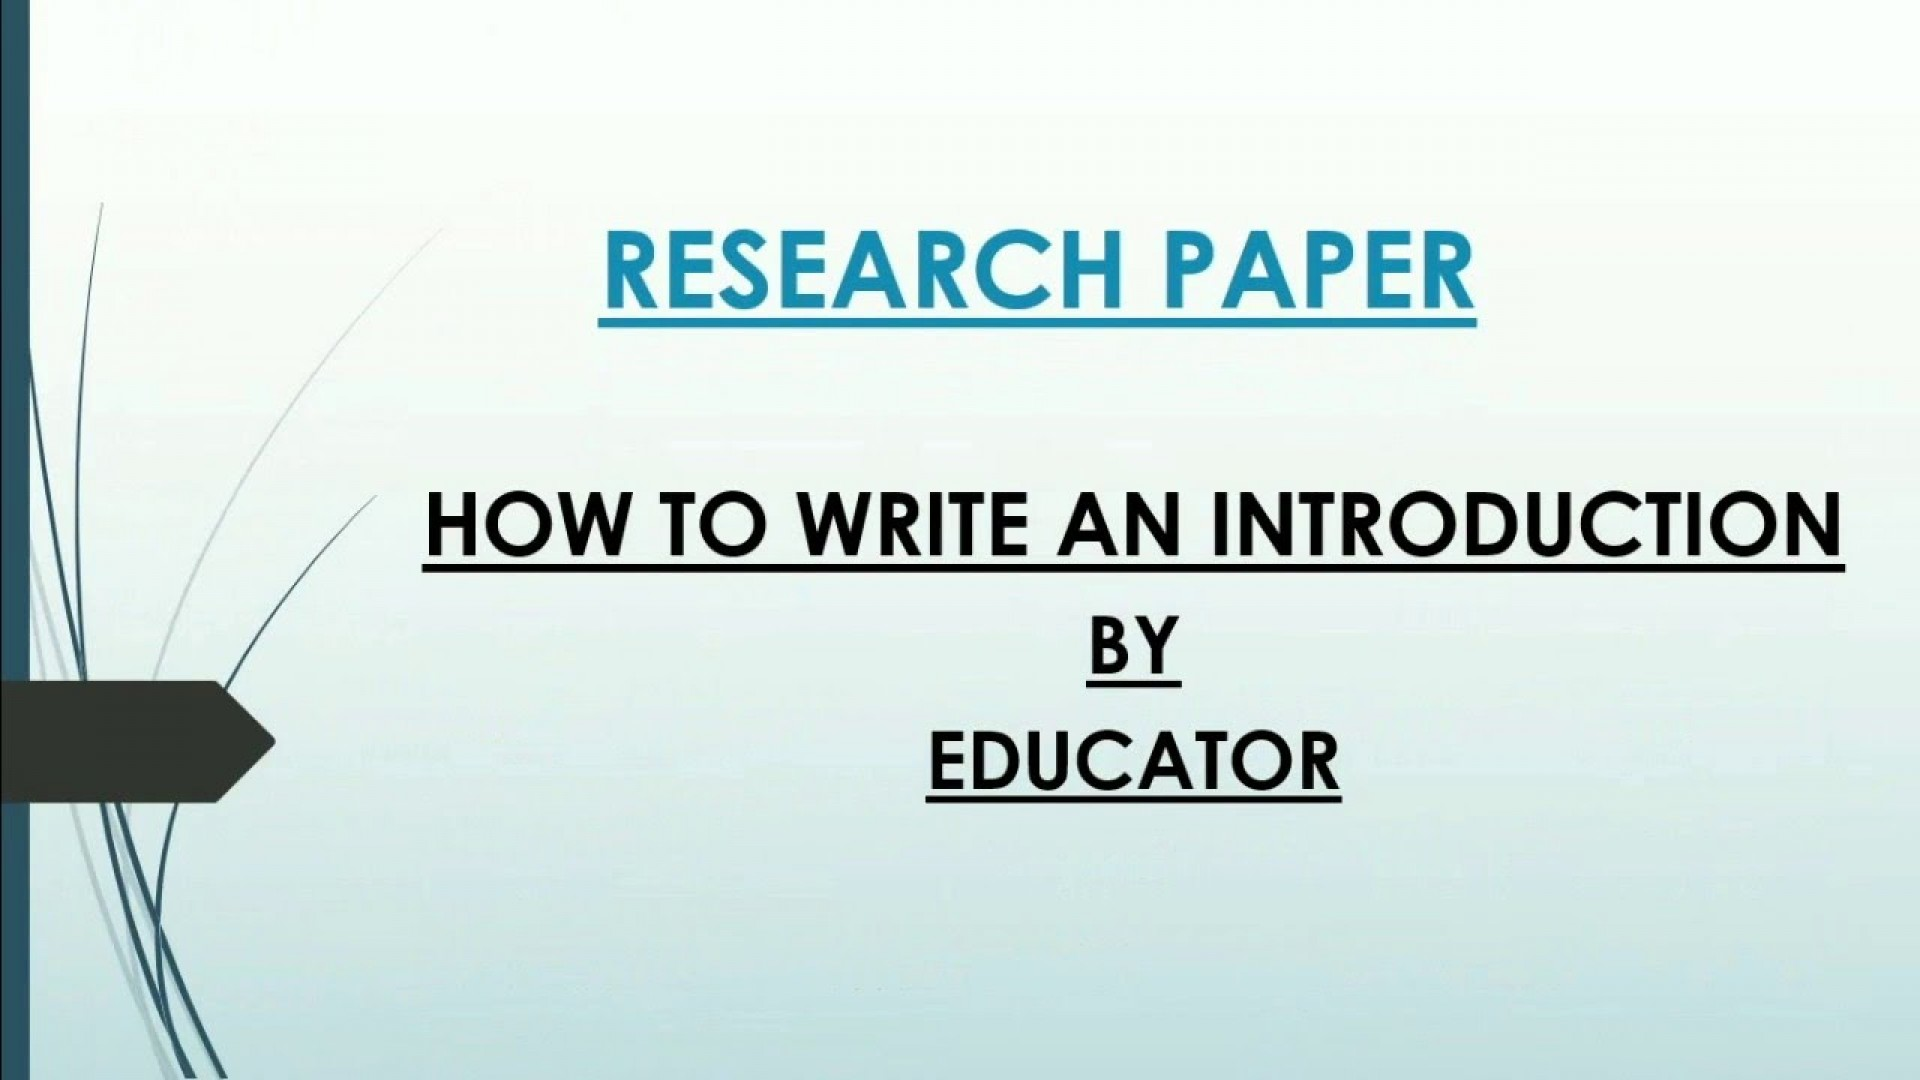 015 Writing An Introduction To Research Paper Top A Effective For How Write Powerpoint Ppt 1920